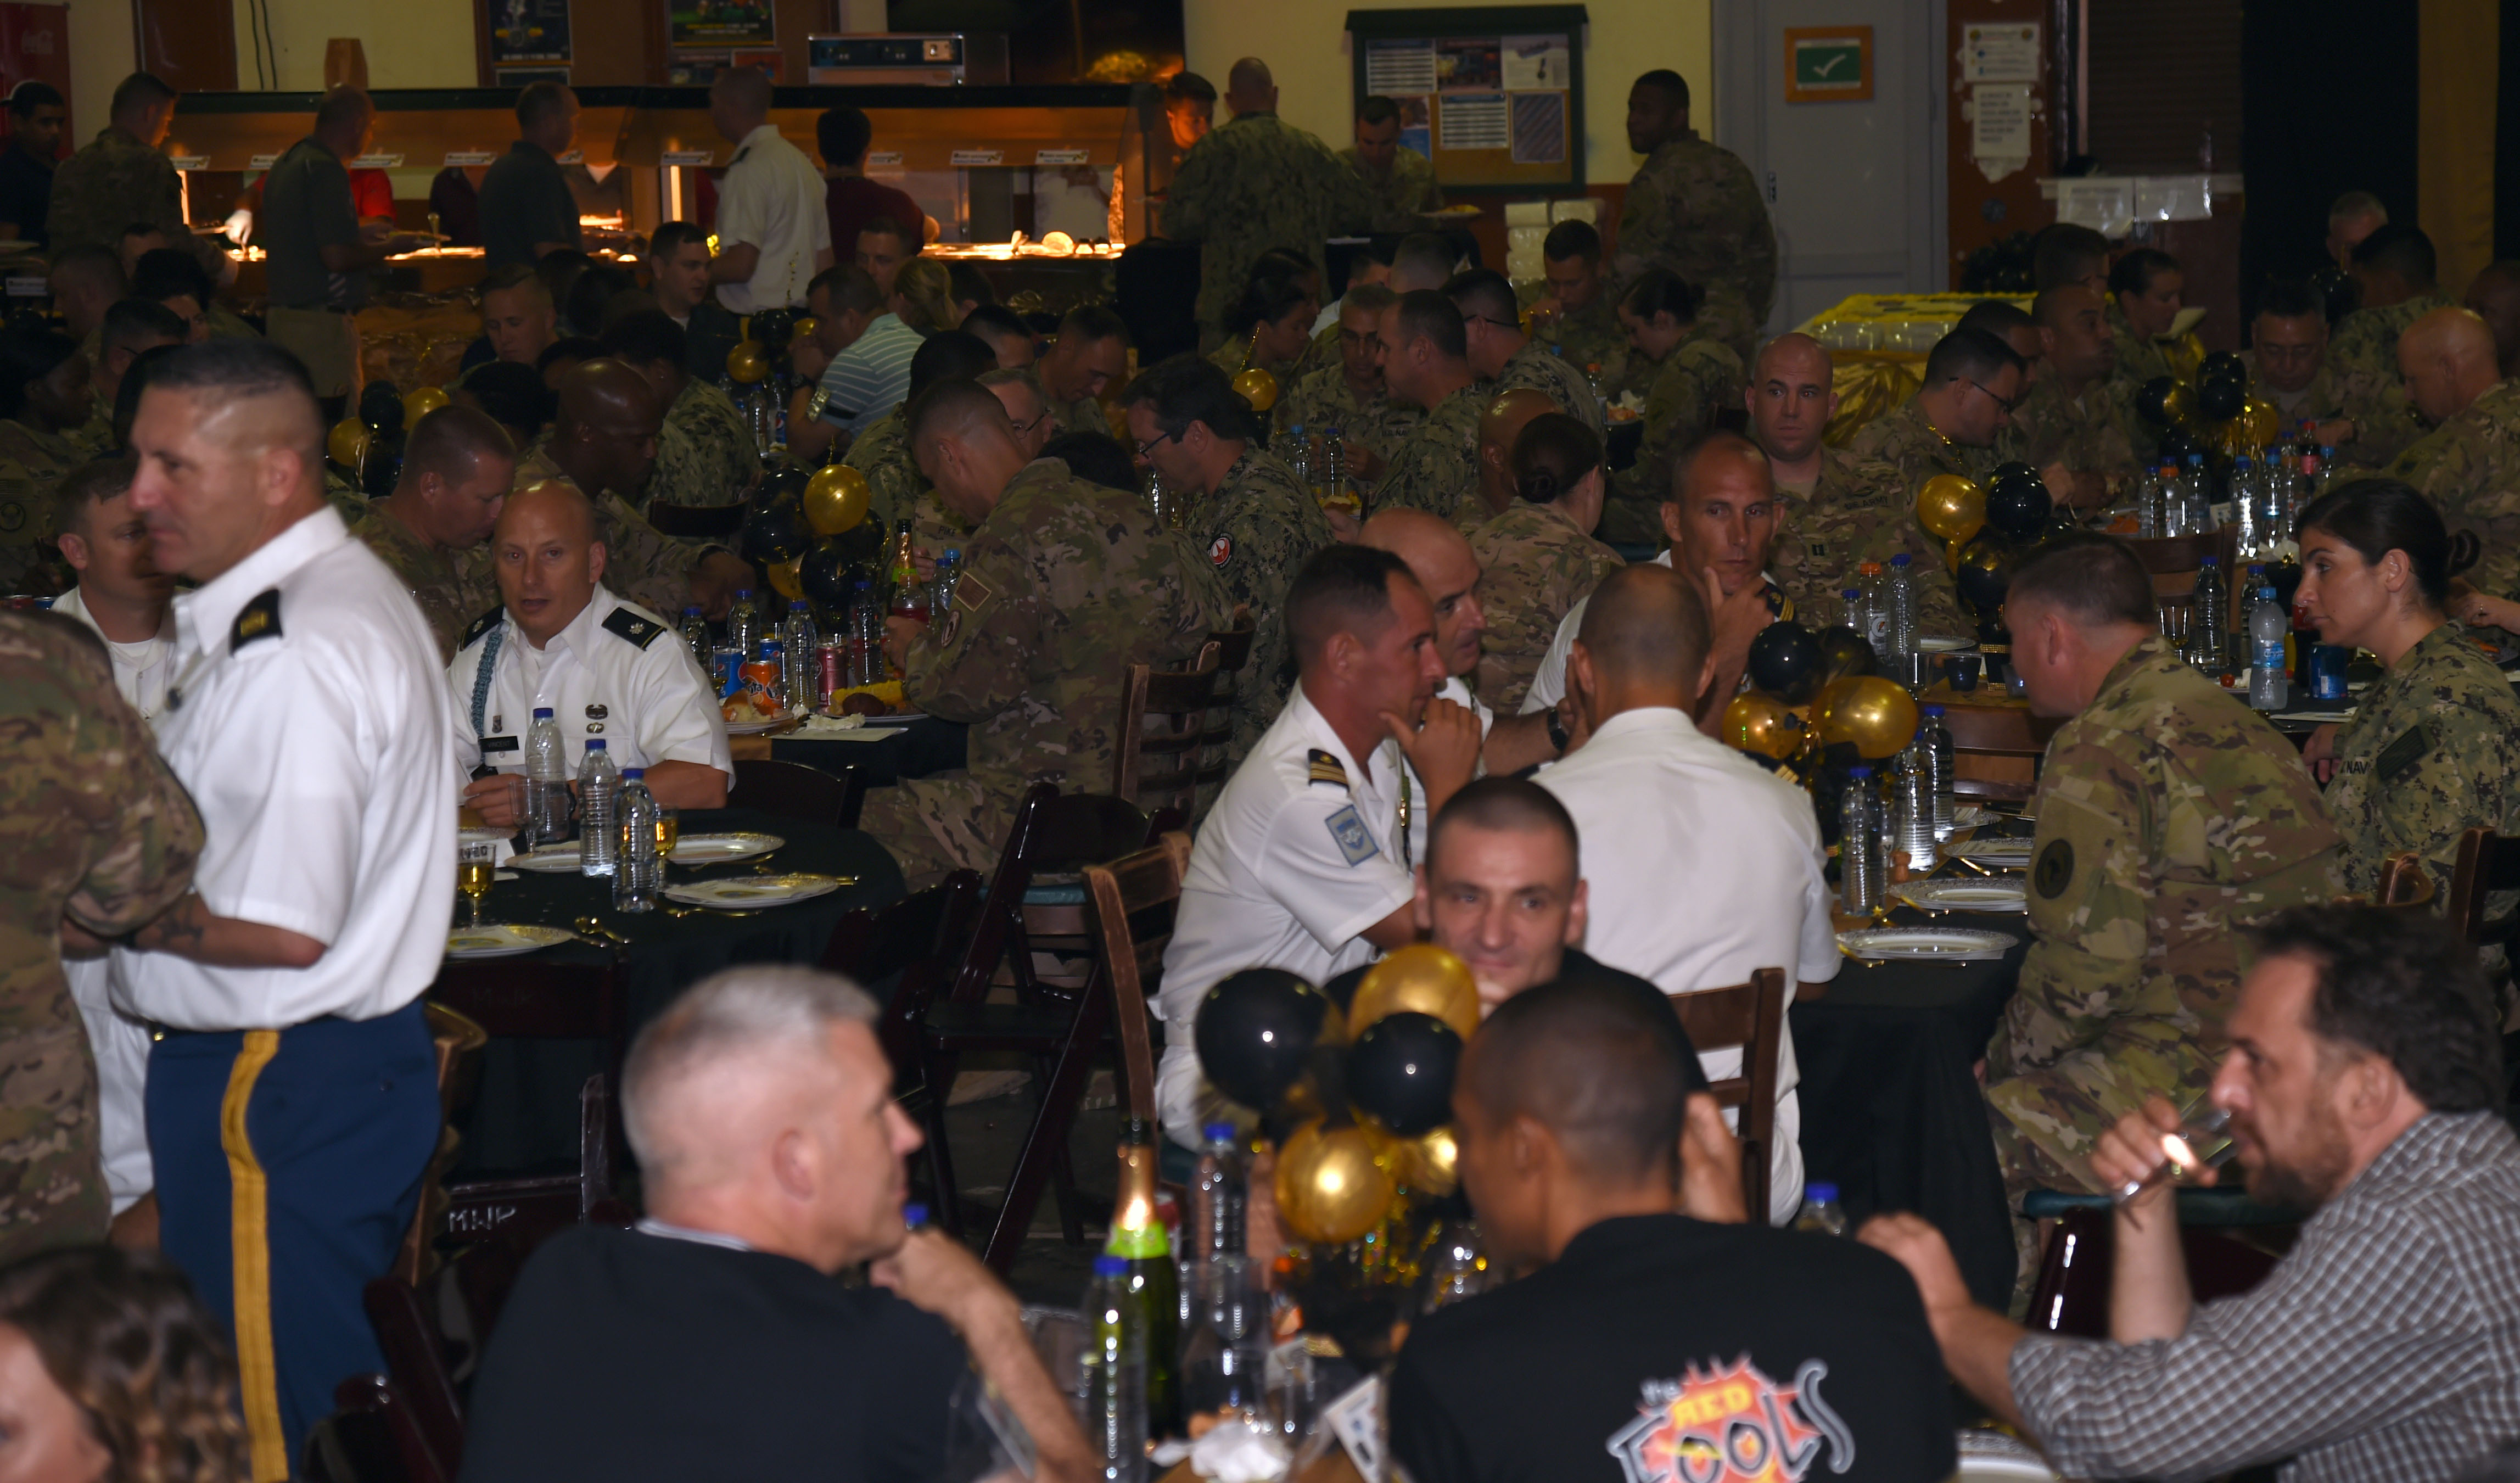 Approximately 300 deployed U.S. Soldiers, Sailors, Airmen, Marines, DoD civilians, and partner nations attended the Combined Joint Task Force – Horn of Africa 242nd Army Ball at Camp Lemonnier, Djibouti, June 17, 2017. U.S. Army Maj. Gen. Roger Cloutier, Jr., U.S. Africa Command chief of staff, served as the event's guest speaker. (U.S. Air National Guard photo by Tech. Sgt. Andria Allmond)